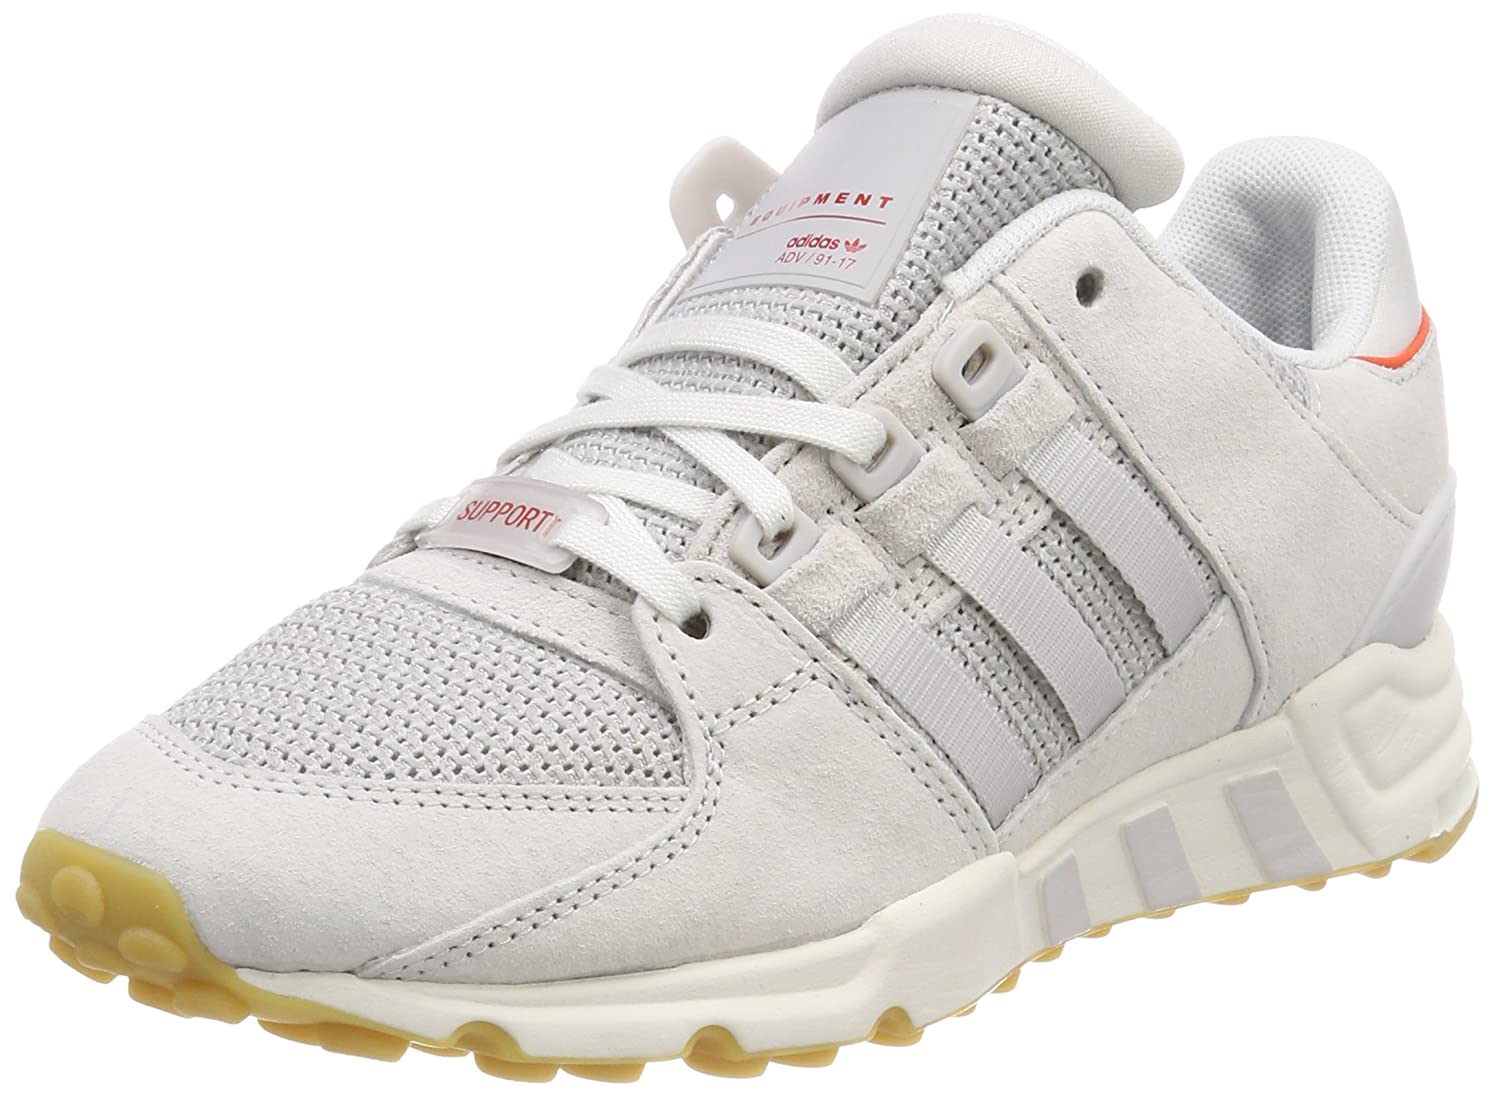 size 40 05bbf 8bfec adidas EQT Support RF W, Scarpe da Fitness Donna  Amazon.it  Scarpe e borse